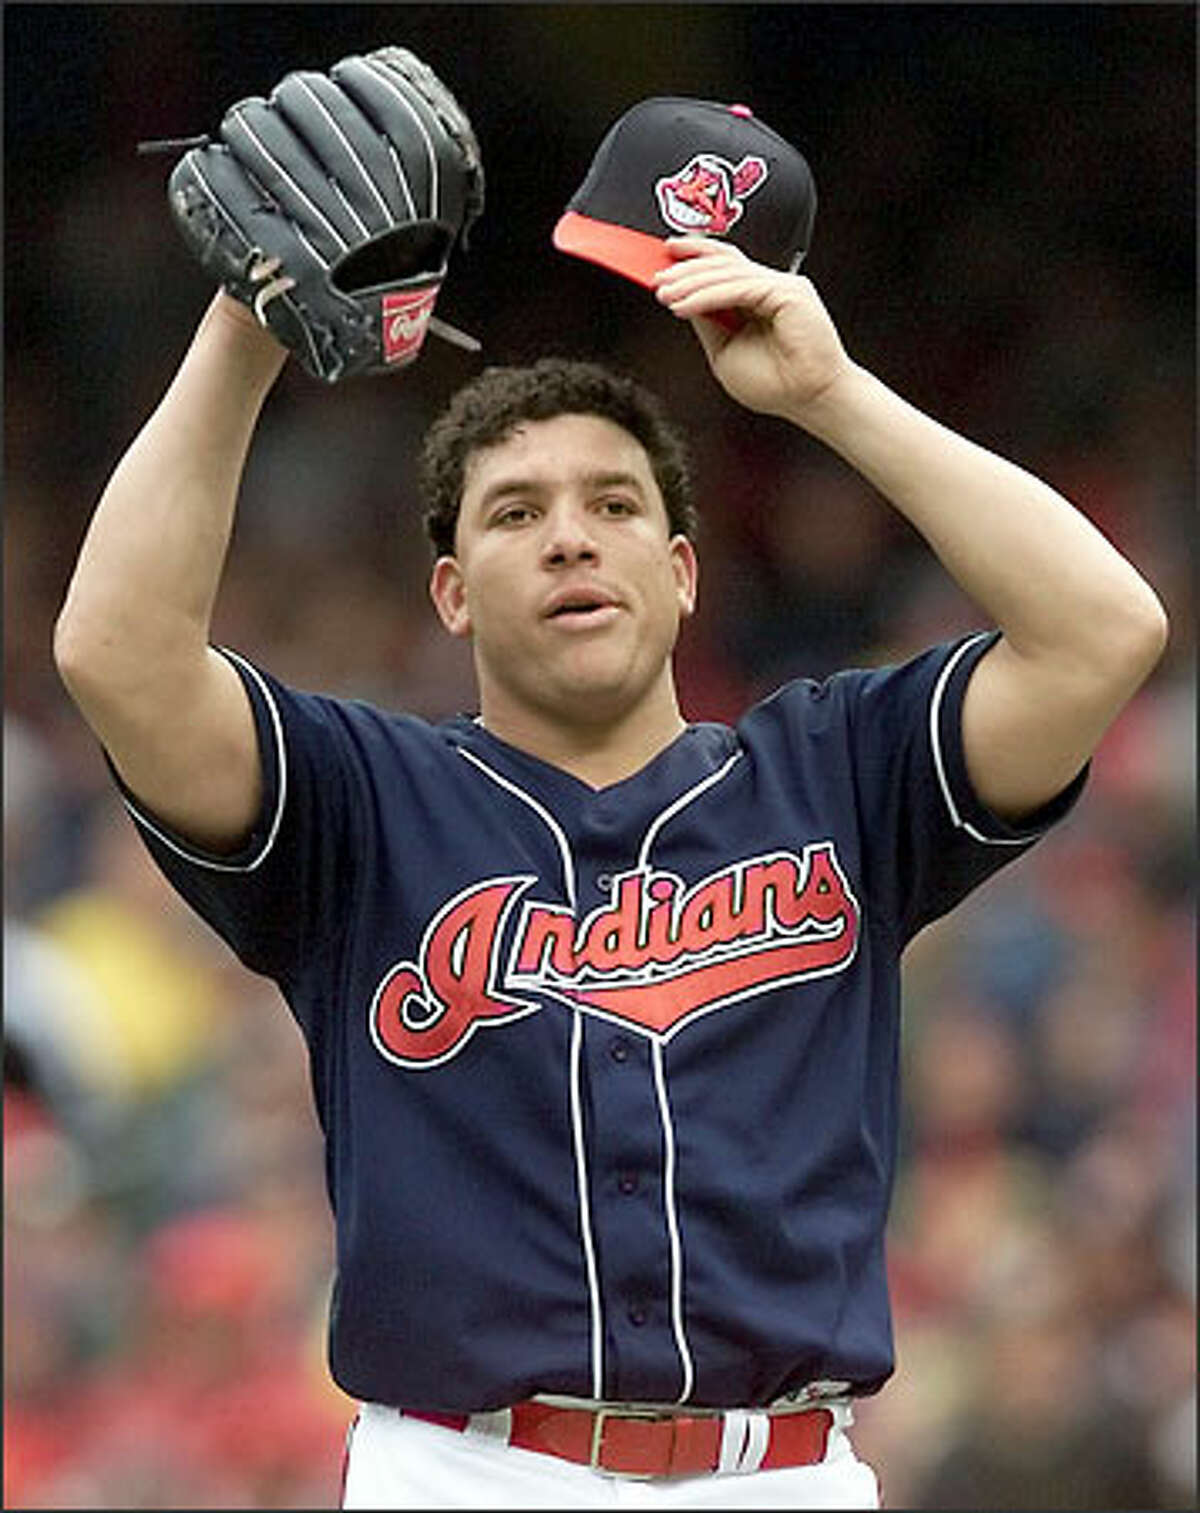 Cleveland starter Bartolo Colon pitched eight shutout innings against the Mariners earlier in the series. Today, he gave up three runs while struggling mightily in the seventh inning.